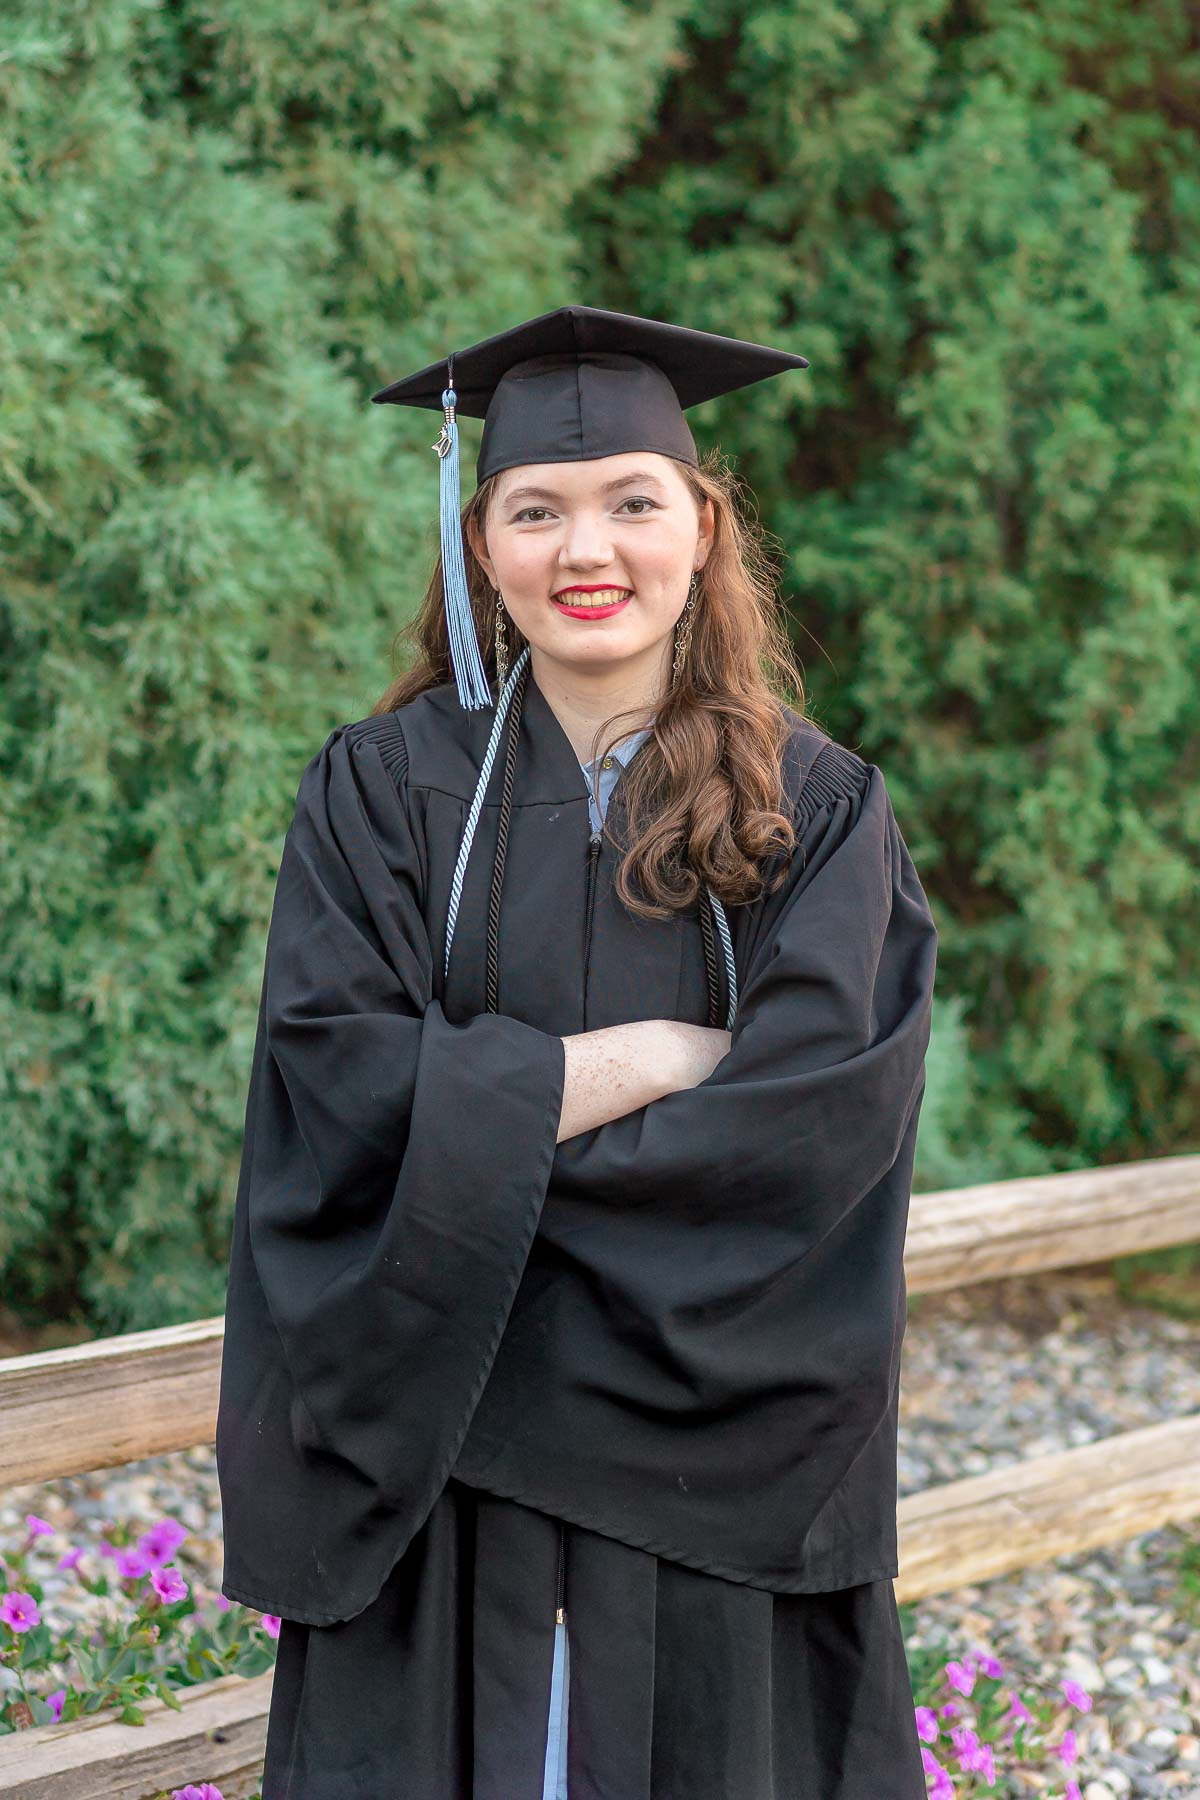 girl in high school graduation gown and cap